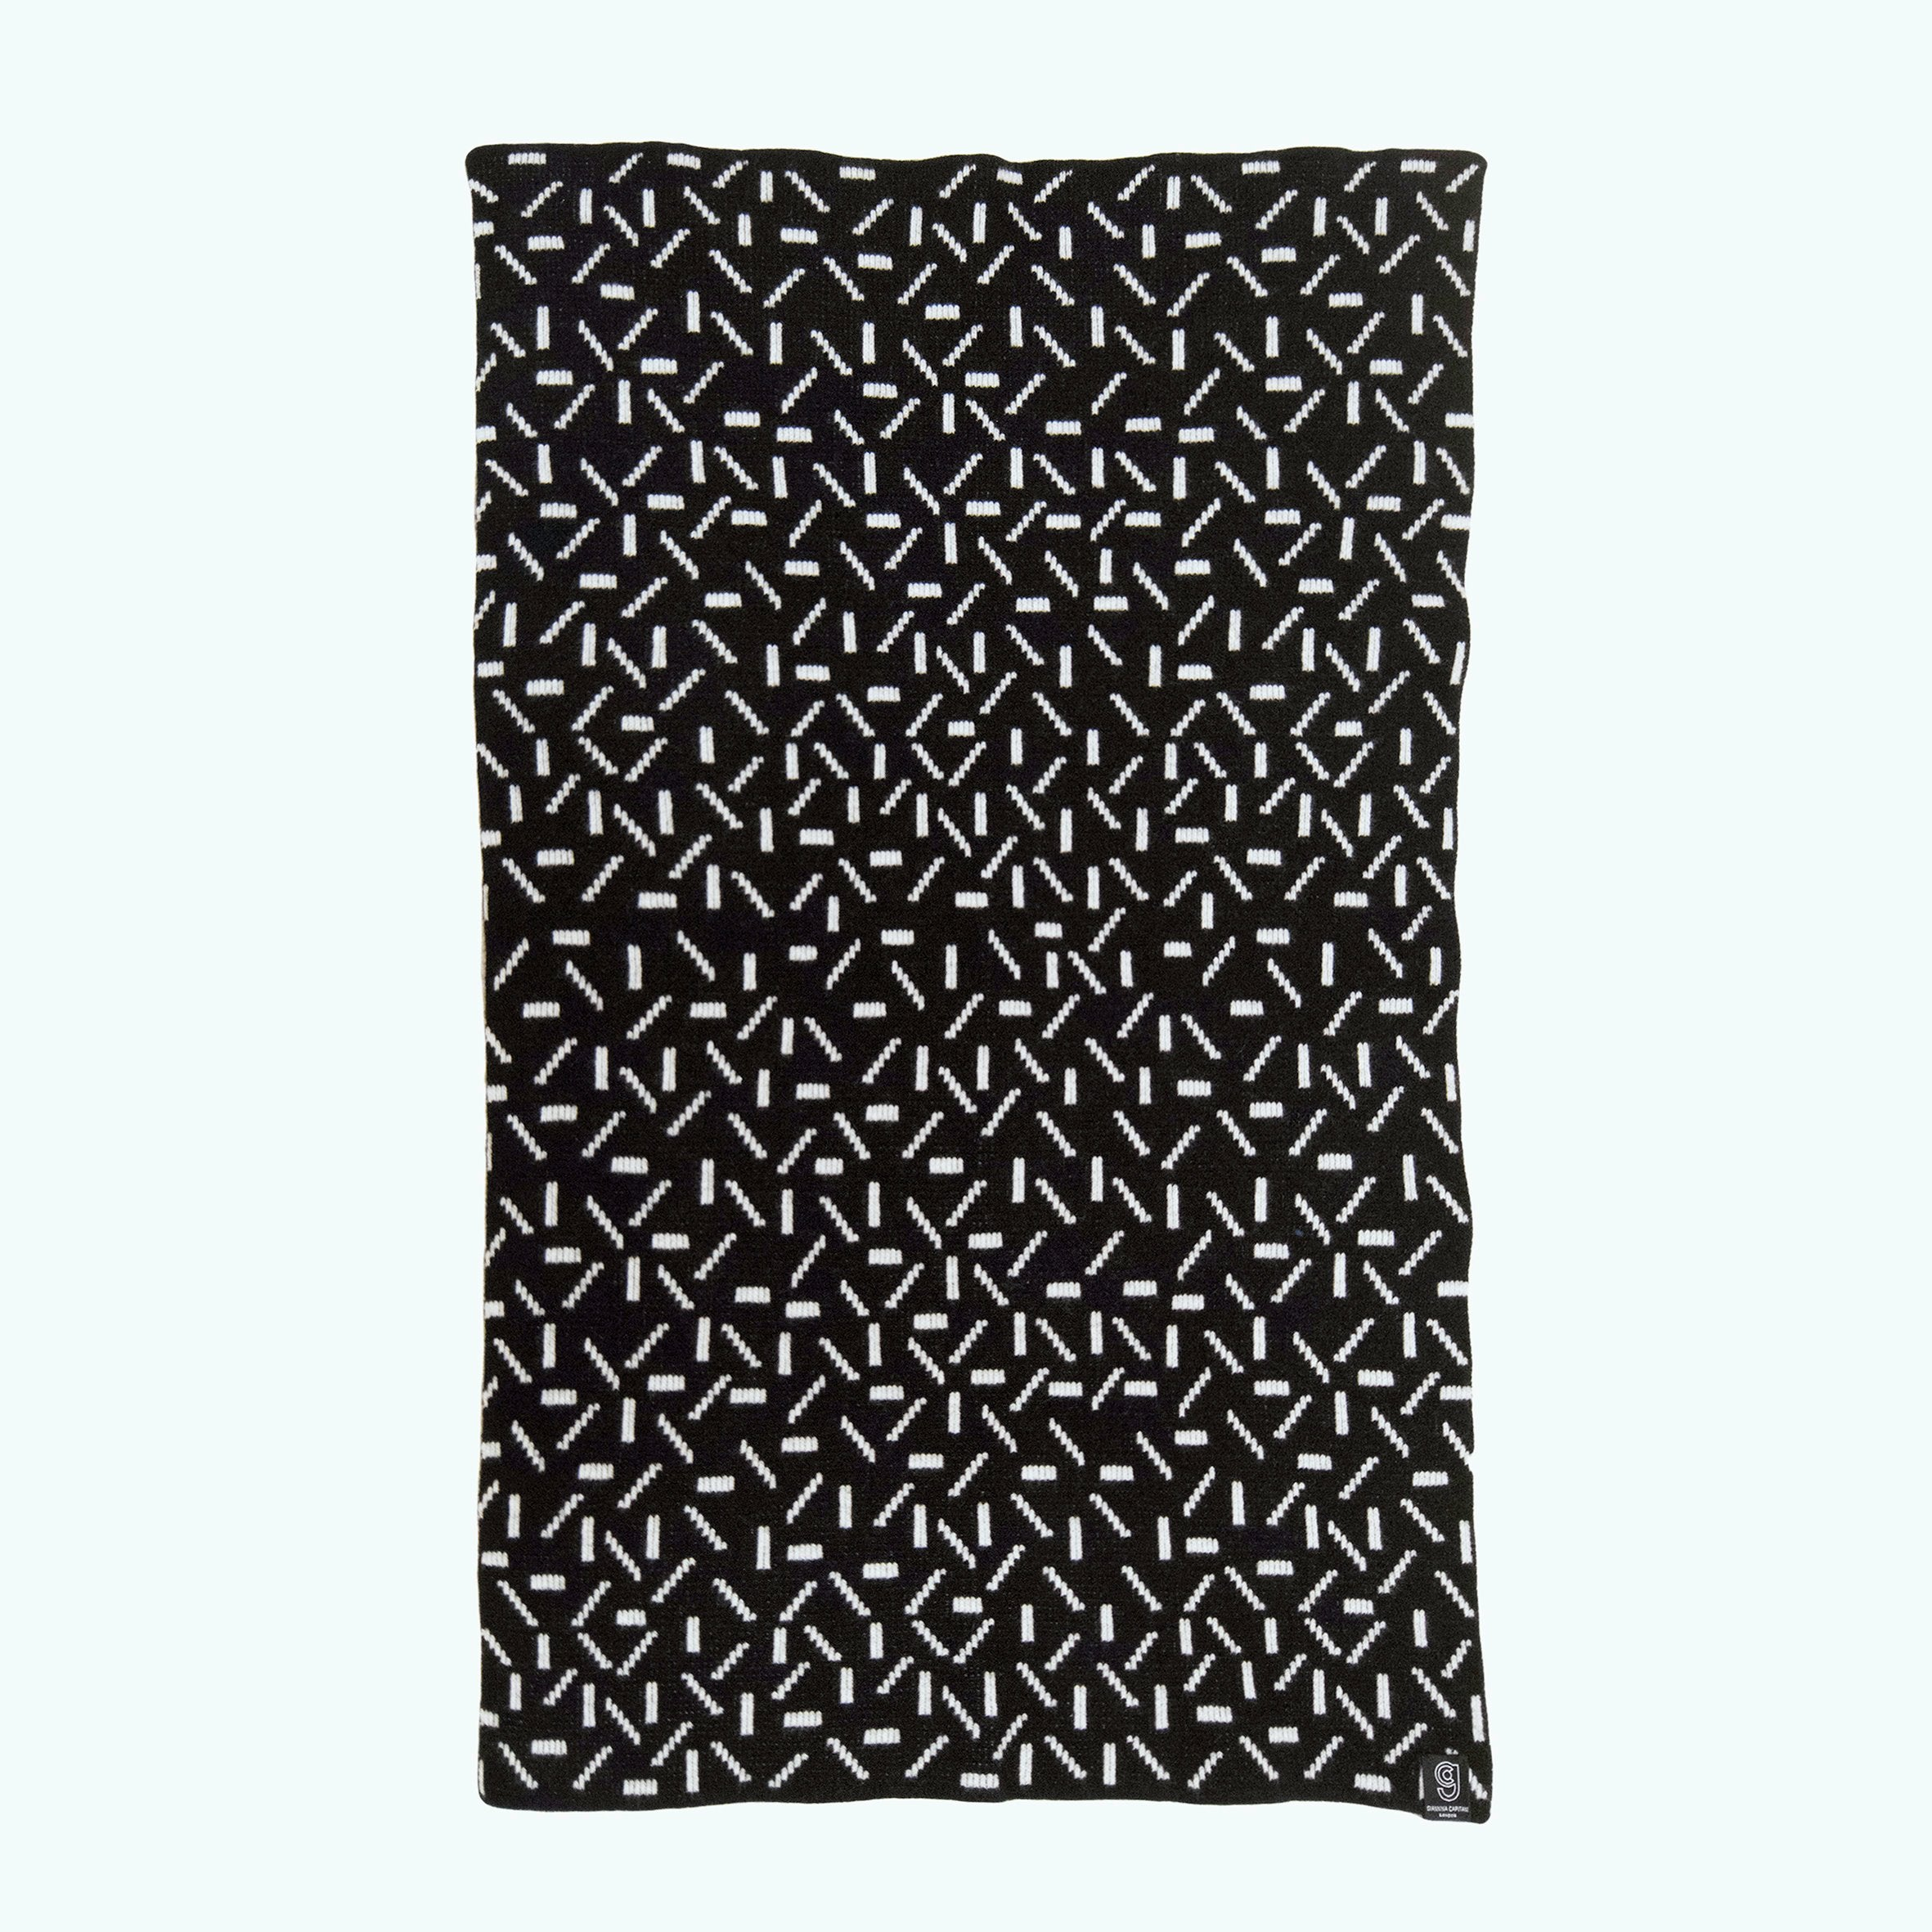 DASH BABY BLANKET IN BLACK AND WHITE